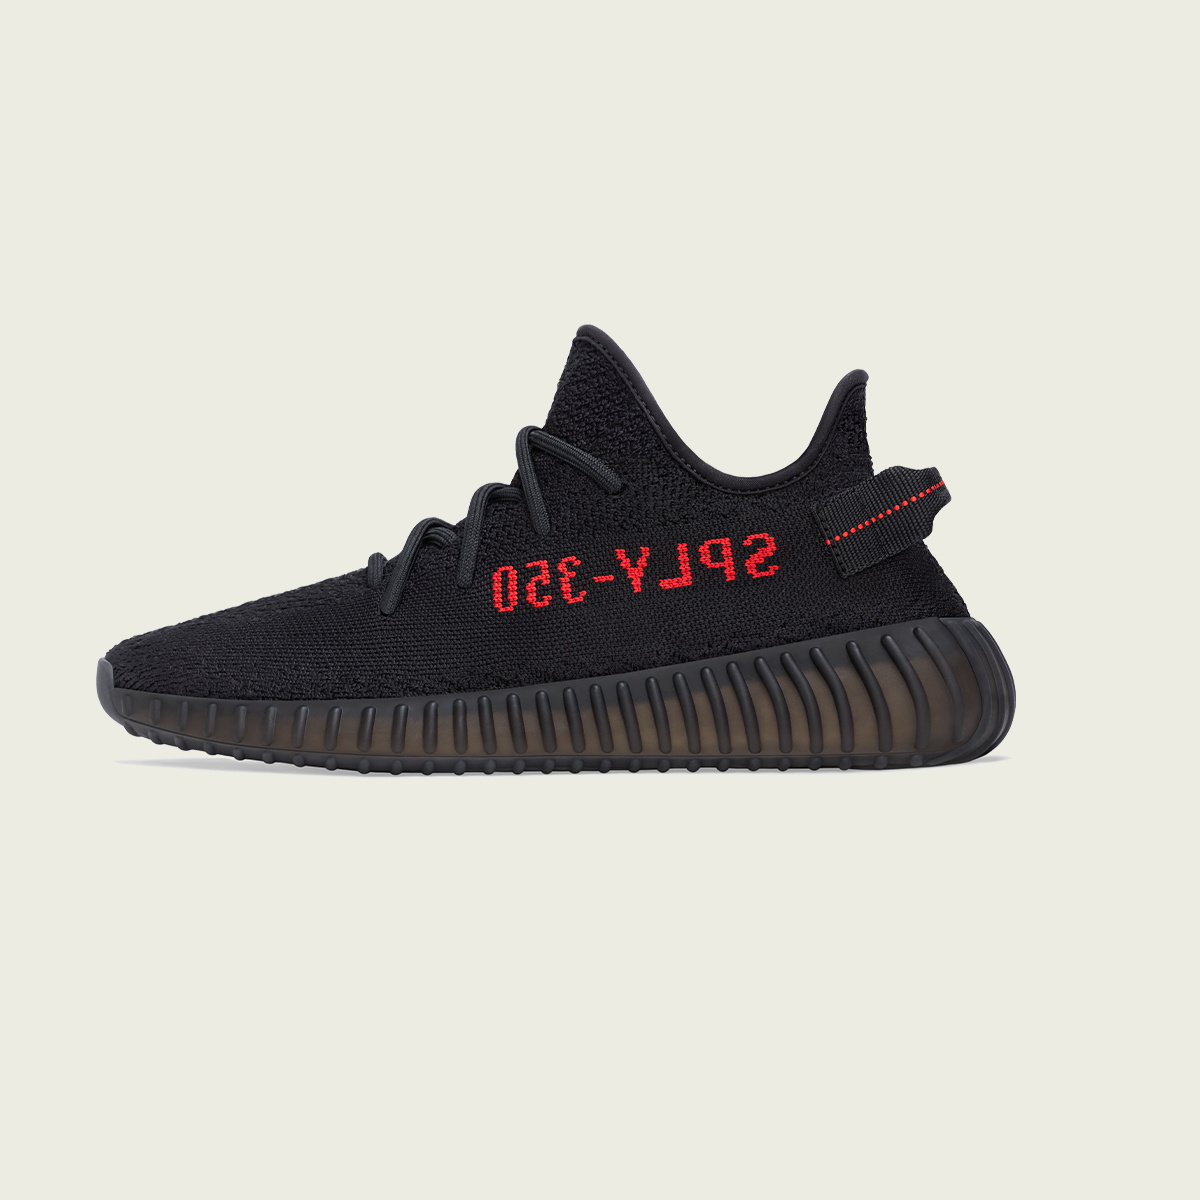 ADIDAS YEEZY BOOST 350 V2 'BRED' CP9652